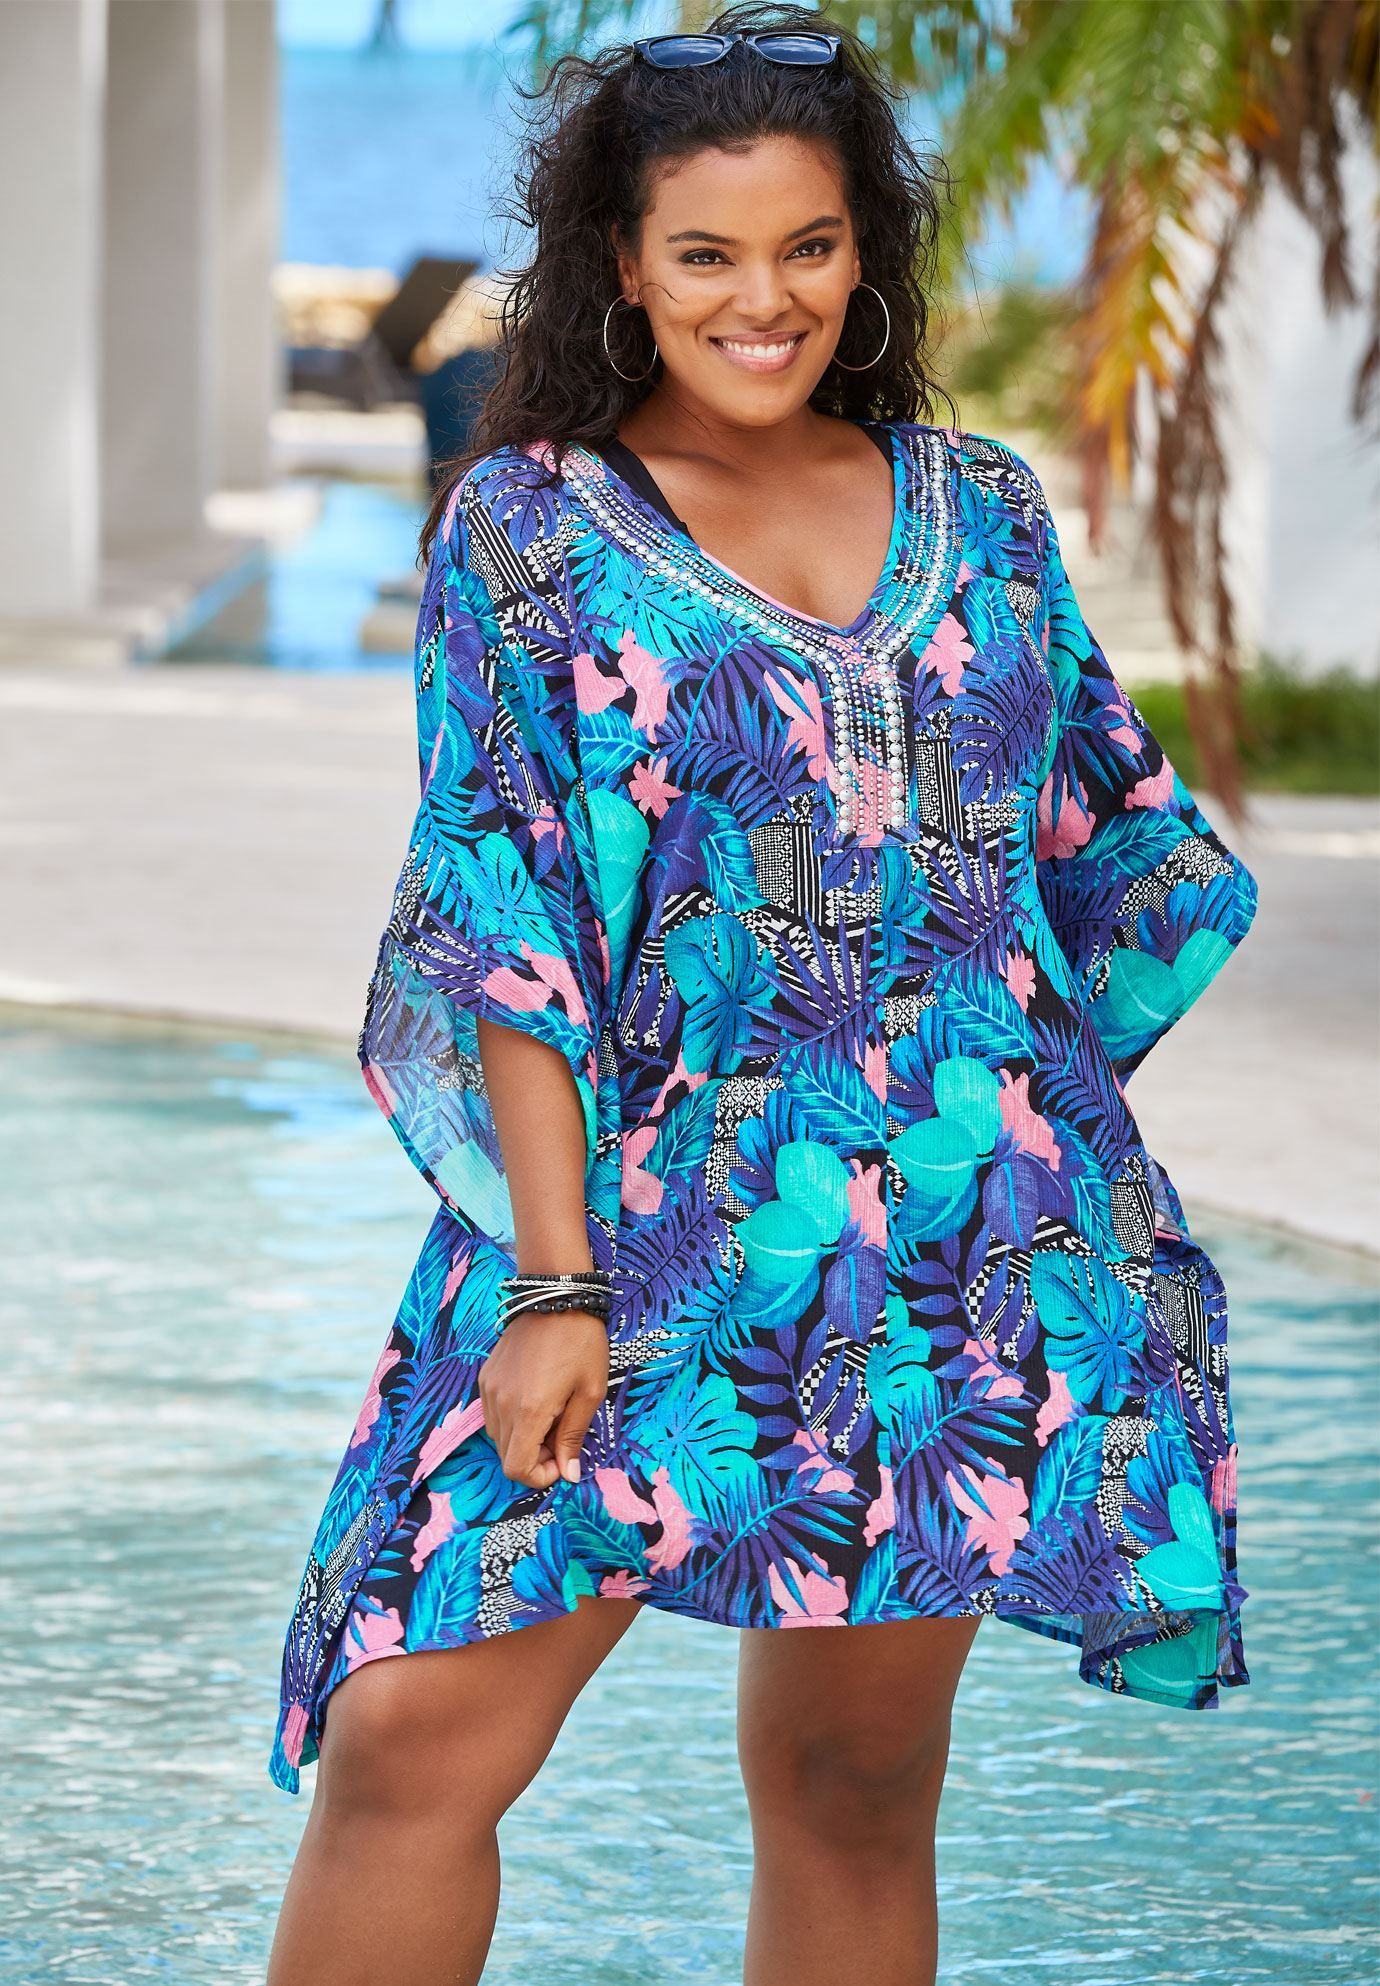 Jeweled Coverup, BLUE TROPICAL FLORAL Cover up, Plus